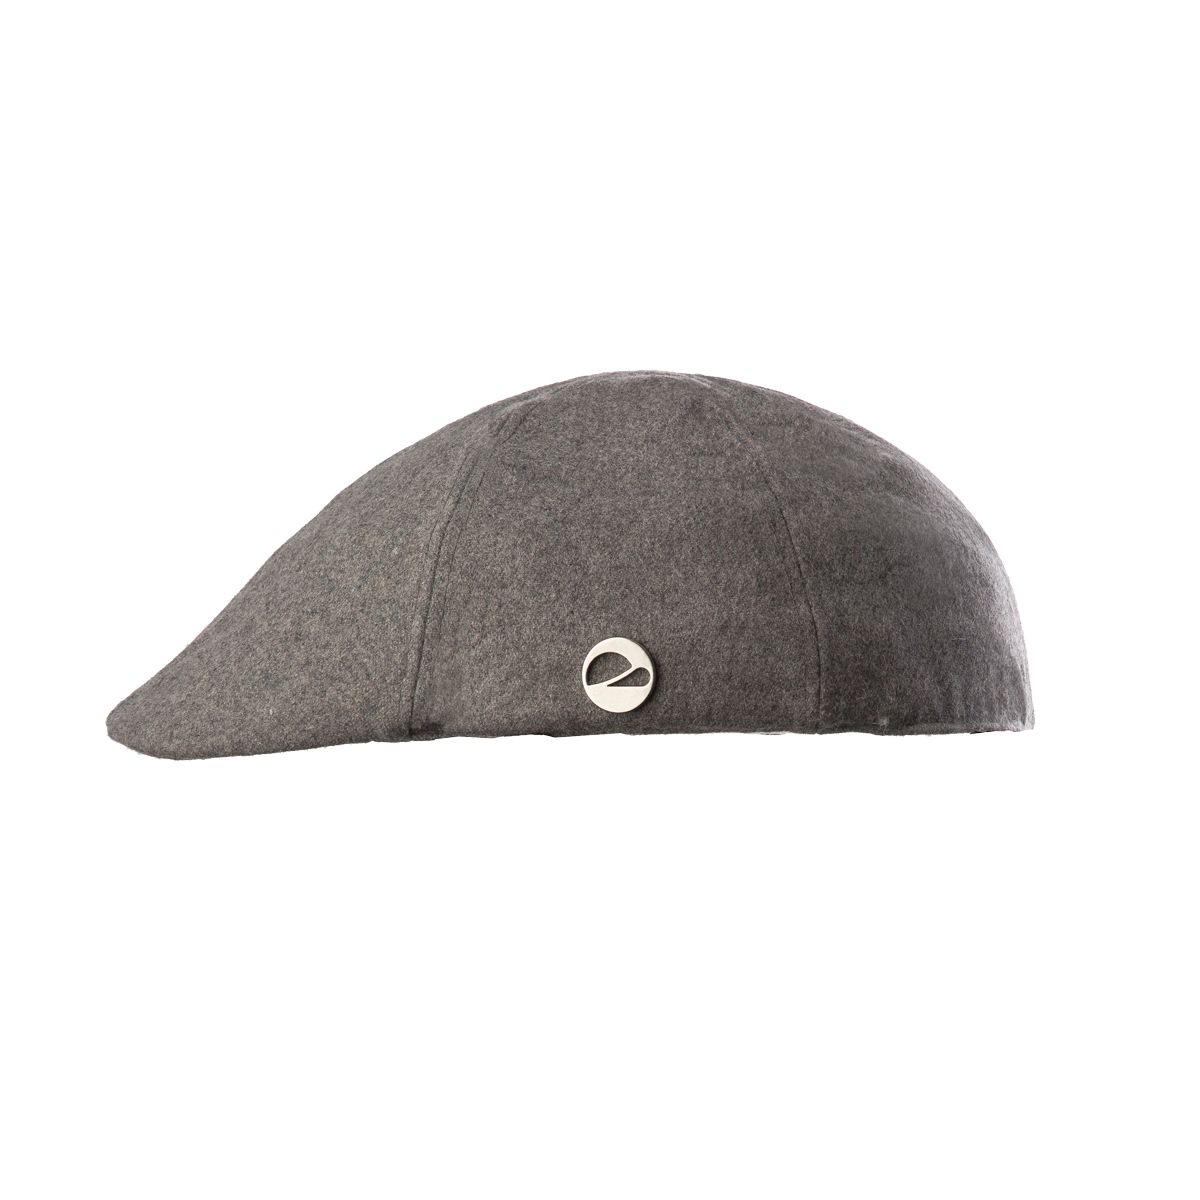 CLOSCA-DUCKBILL-GREY-SIDE